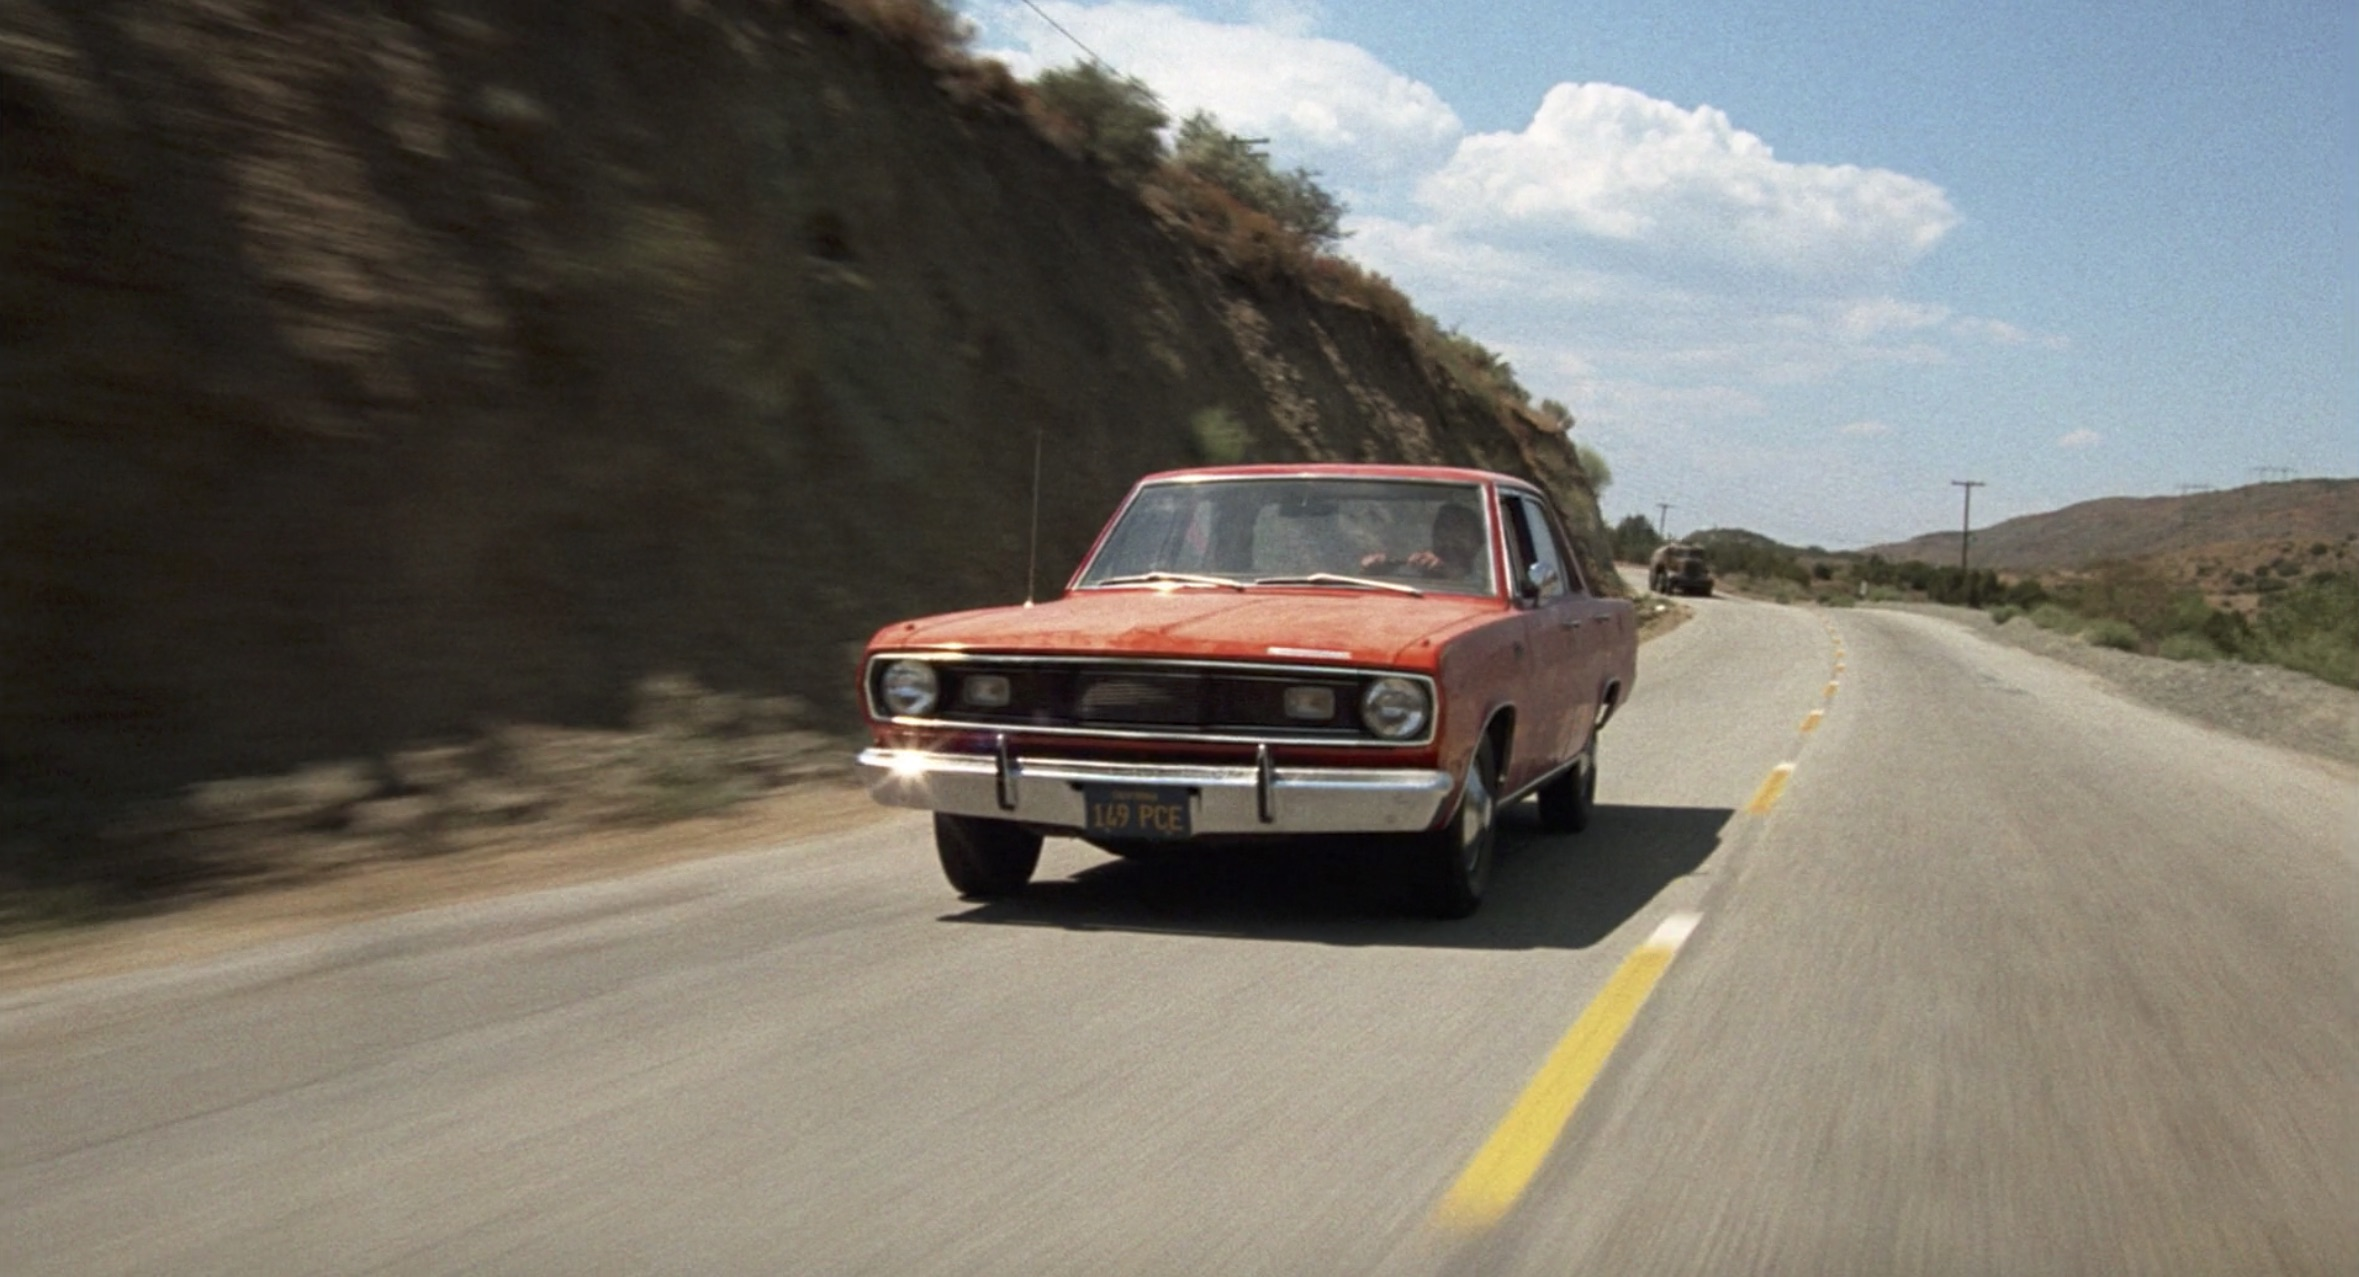 1971 Plymouth Valiant driving down the highway Duel